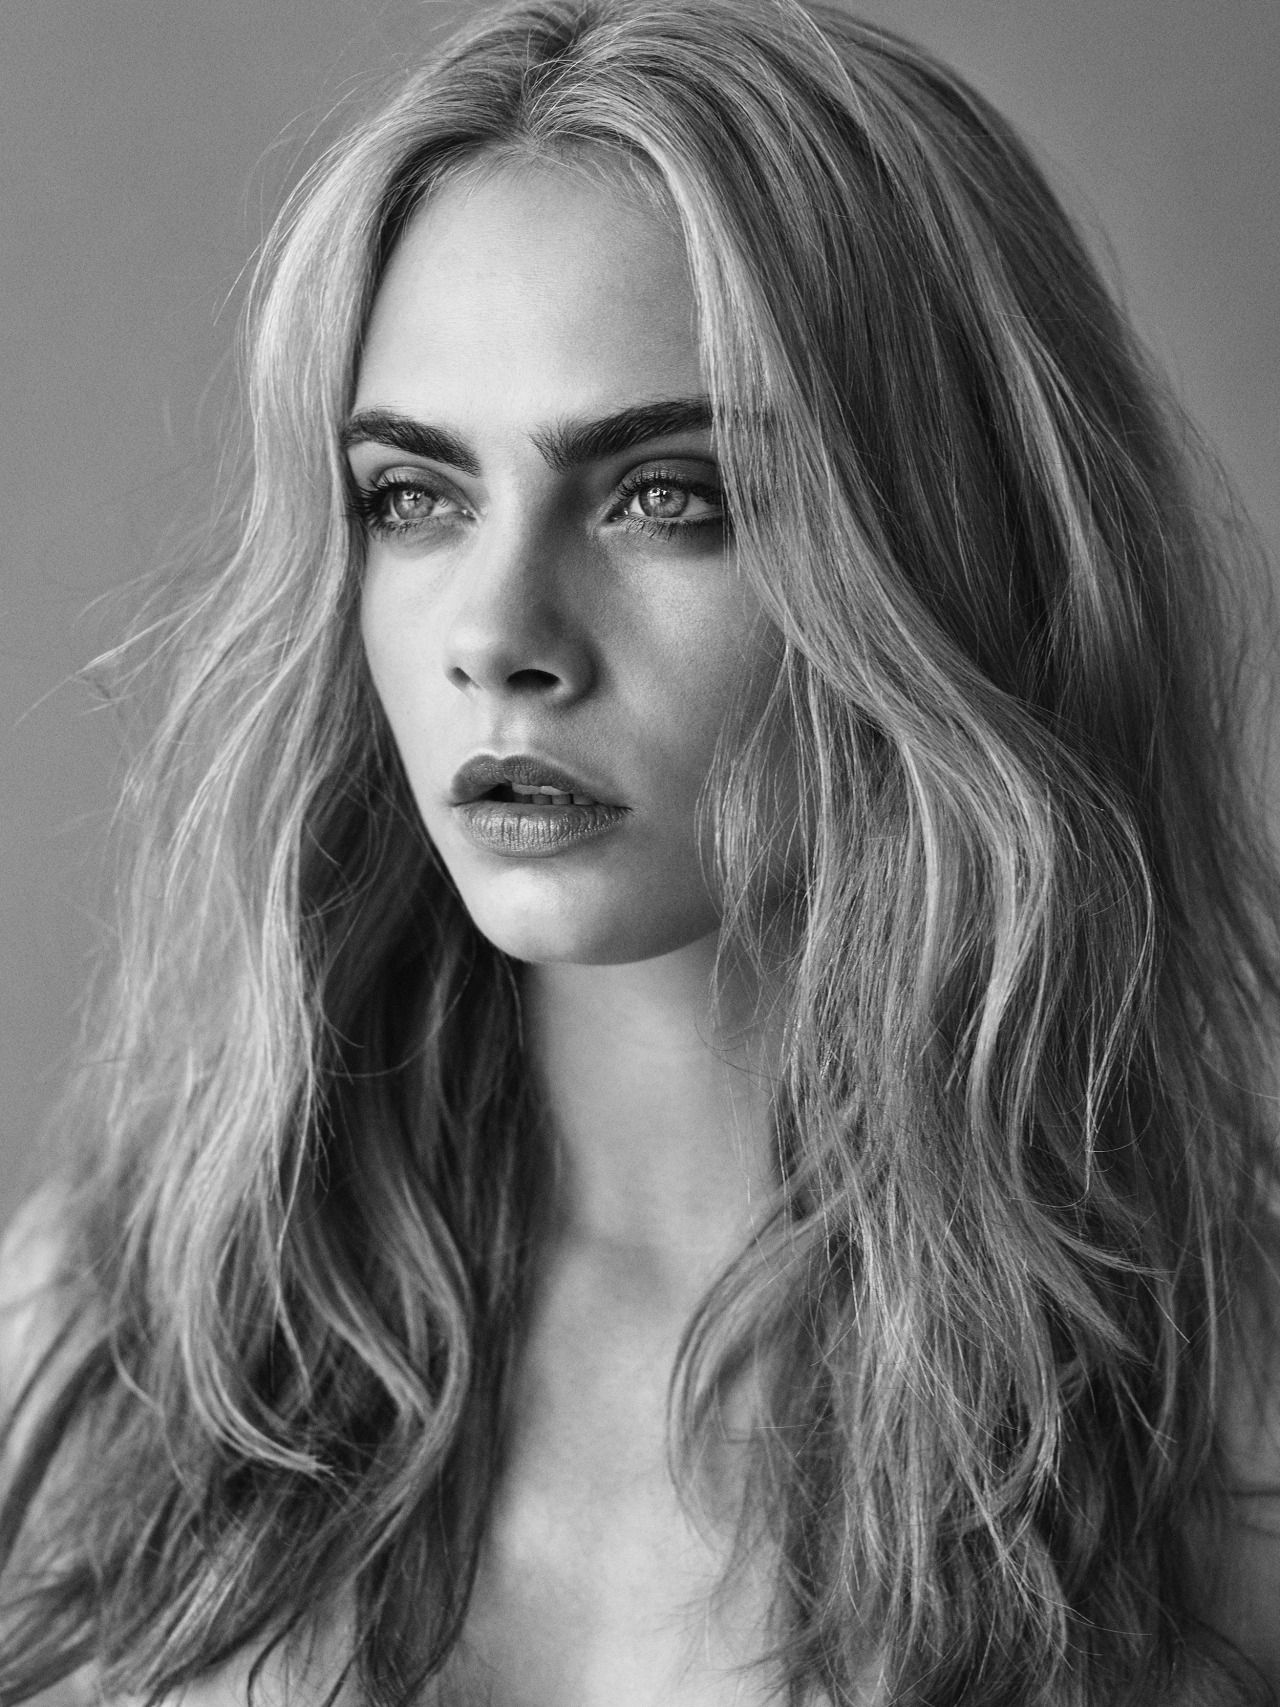 Cara Delevingne By Simon Emmett For Esquire Uk Best Sunglasses And Fashion Blog In One Spot A One Cara Delevingne Photoshoot Cara Delevigne Cara Delvingne